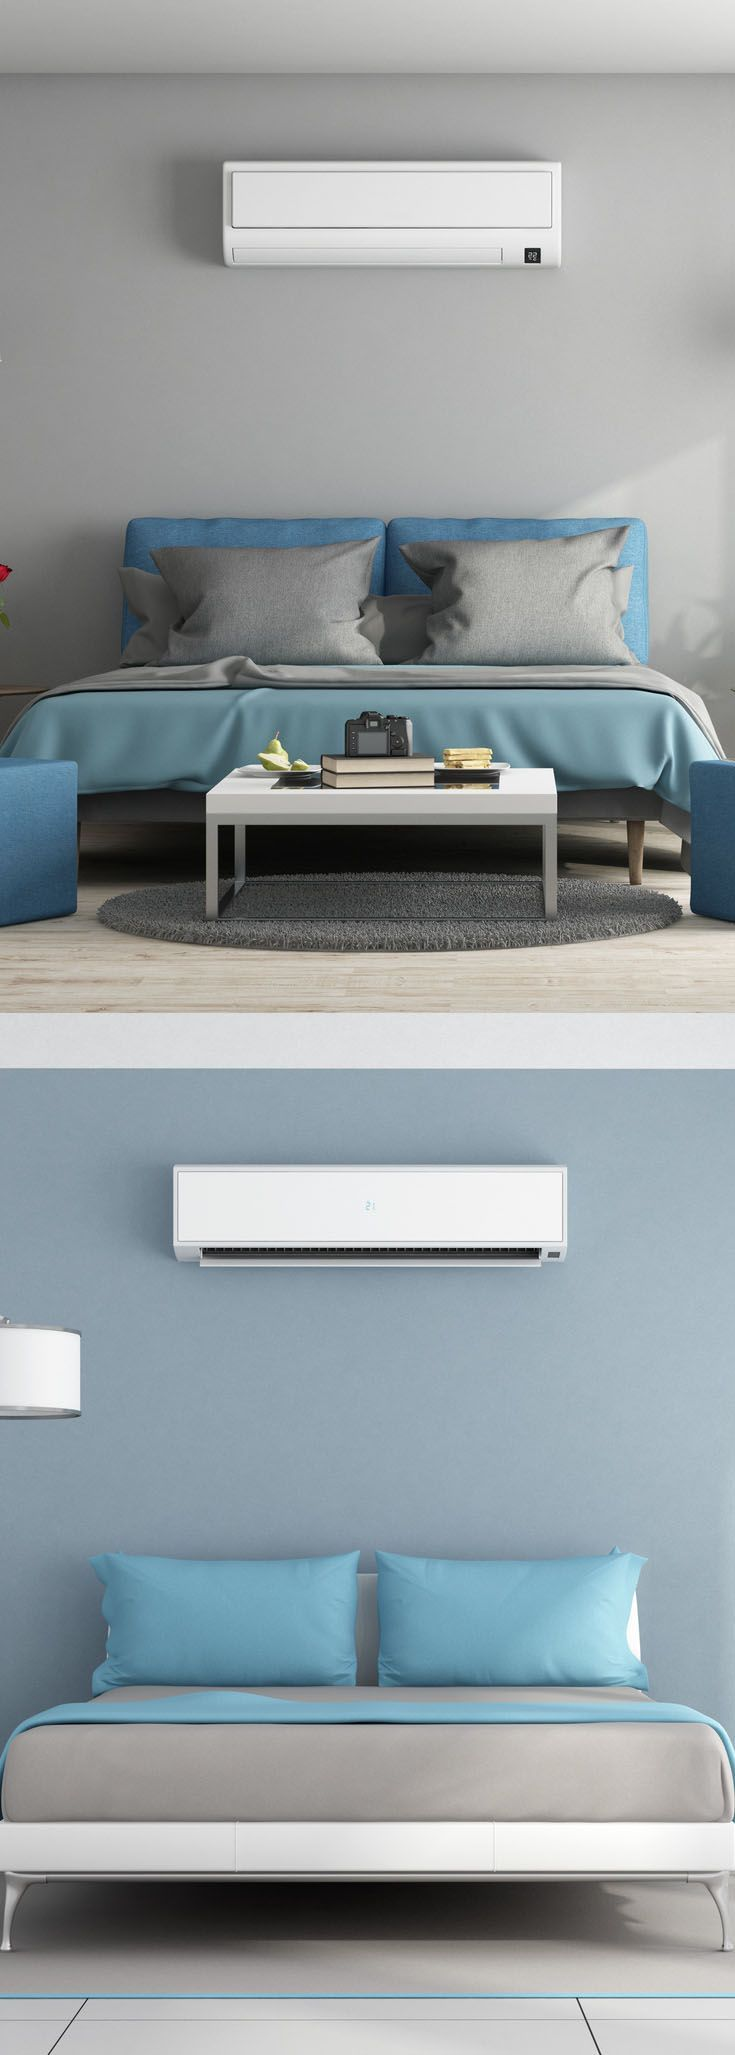 The 10 Best Window Air Conditioners Best window air